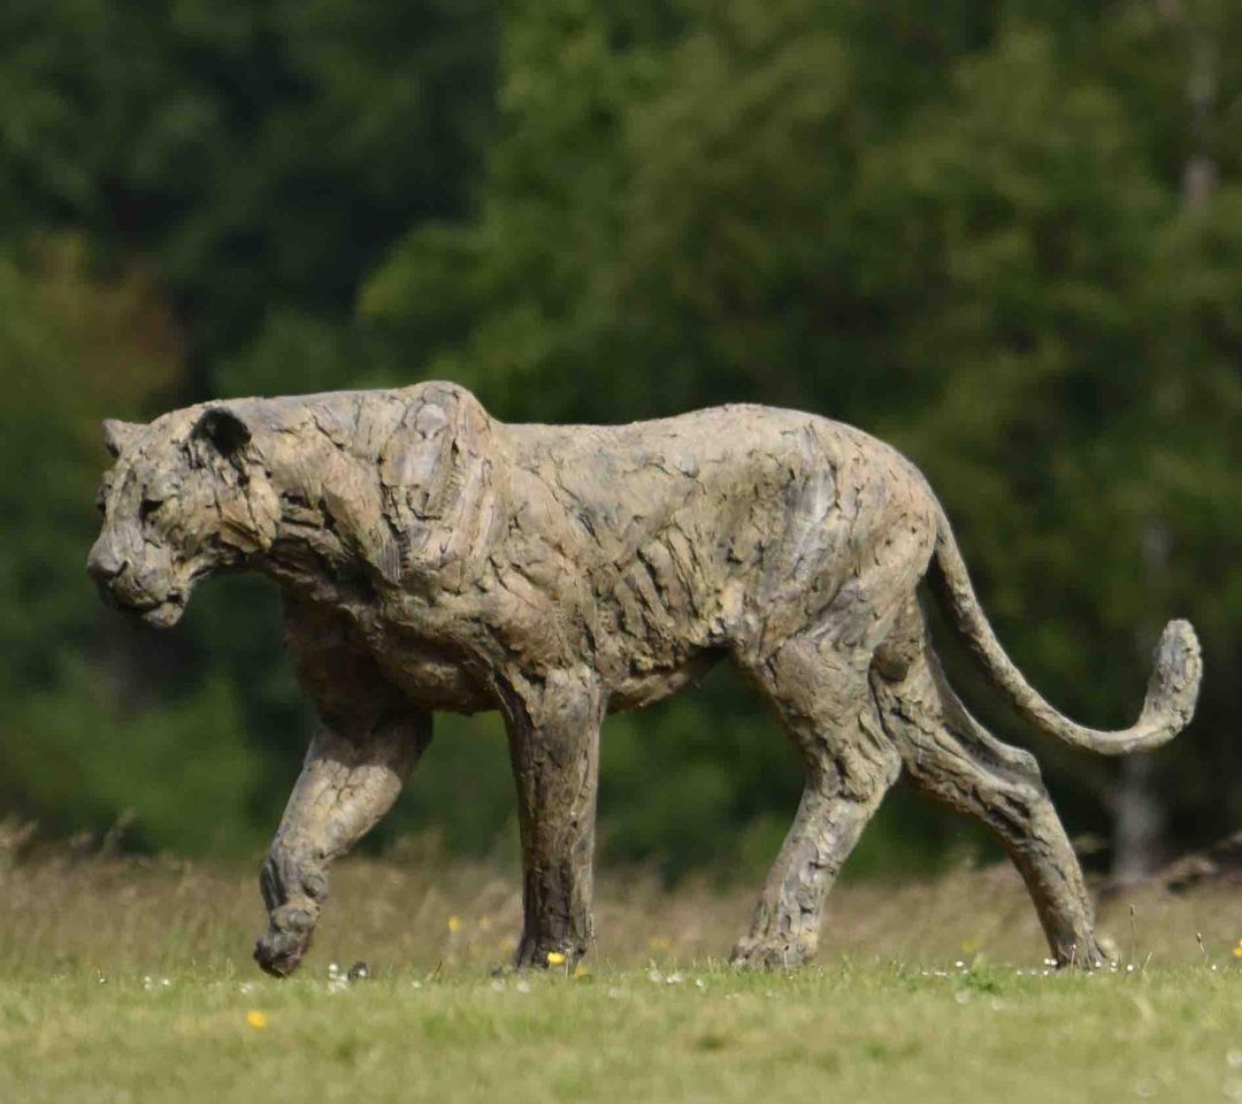 Outdoor Animal Lioness Life Size Bronze Sculpture by Hamish Mackie